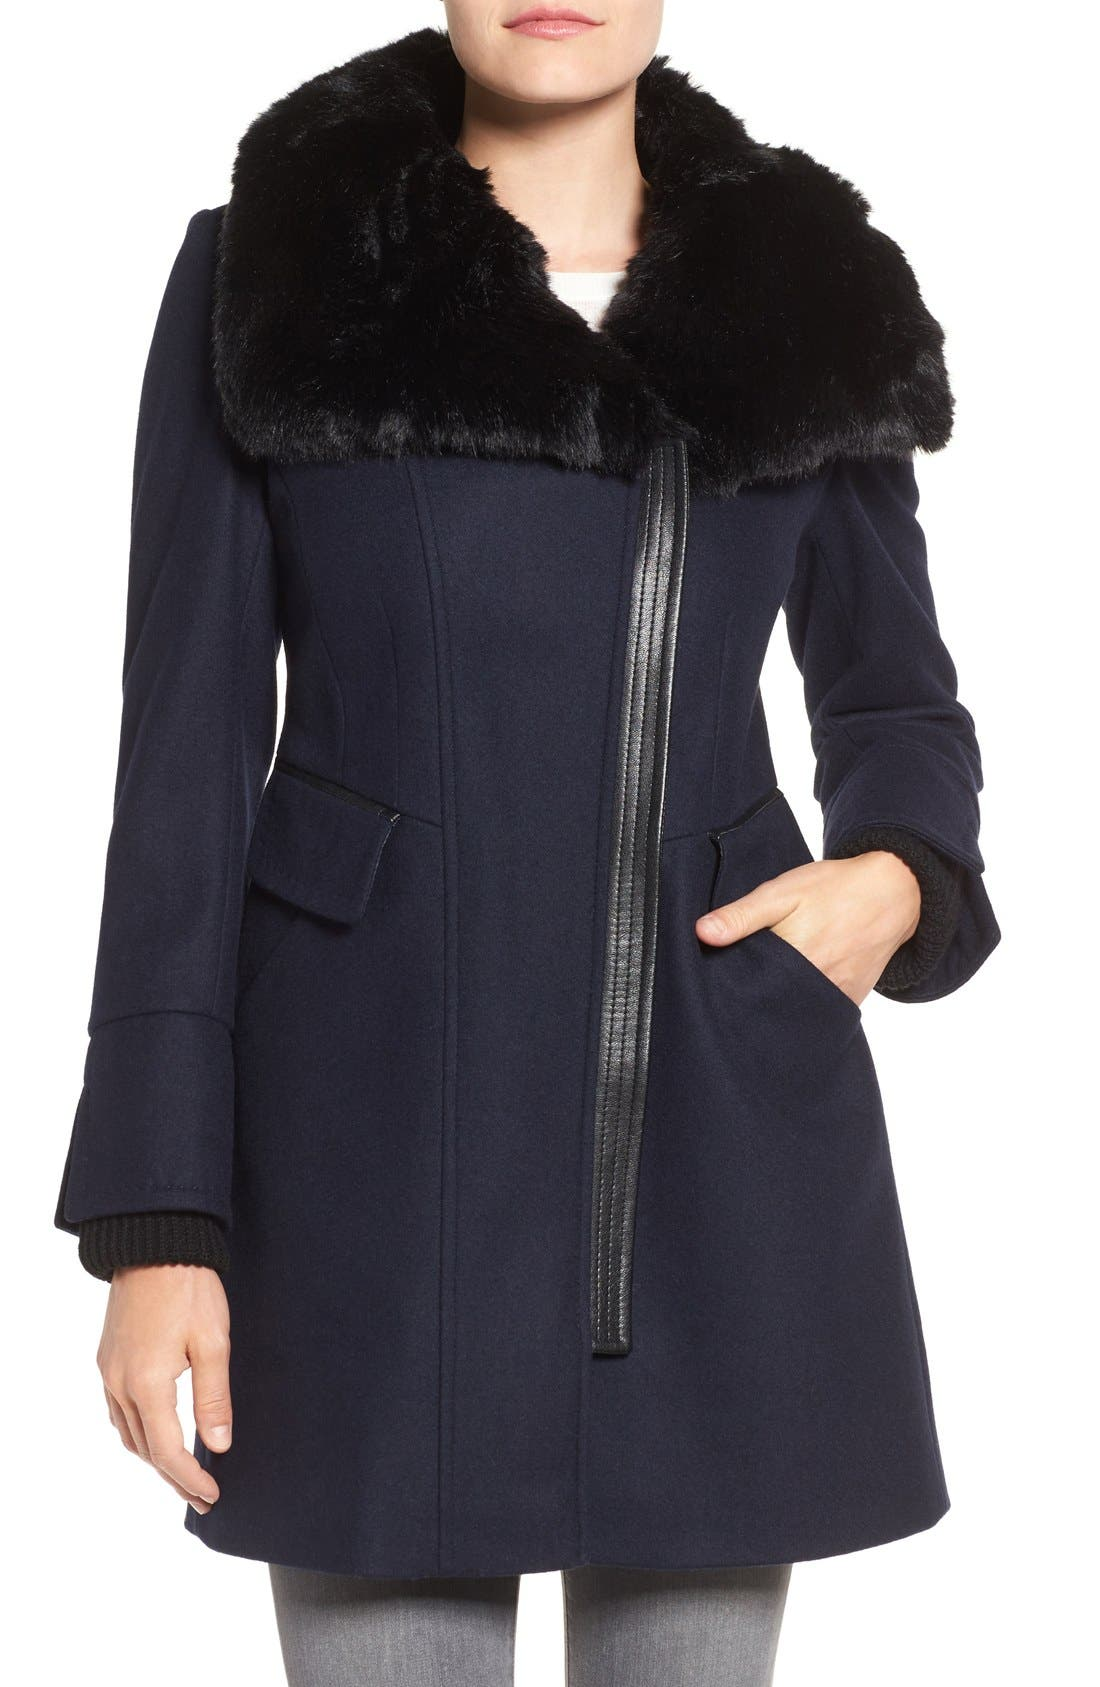 Via Spiga Faux Fur Trim Asymmetrical Wool Blend Coat